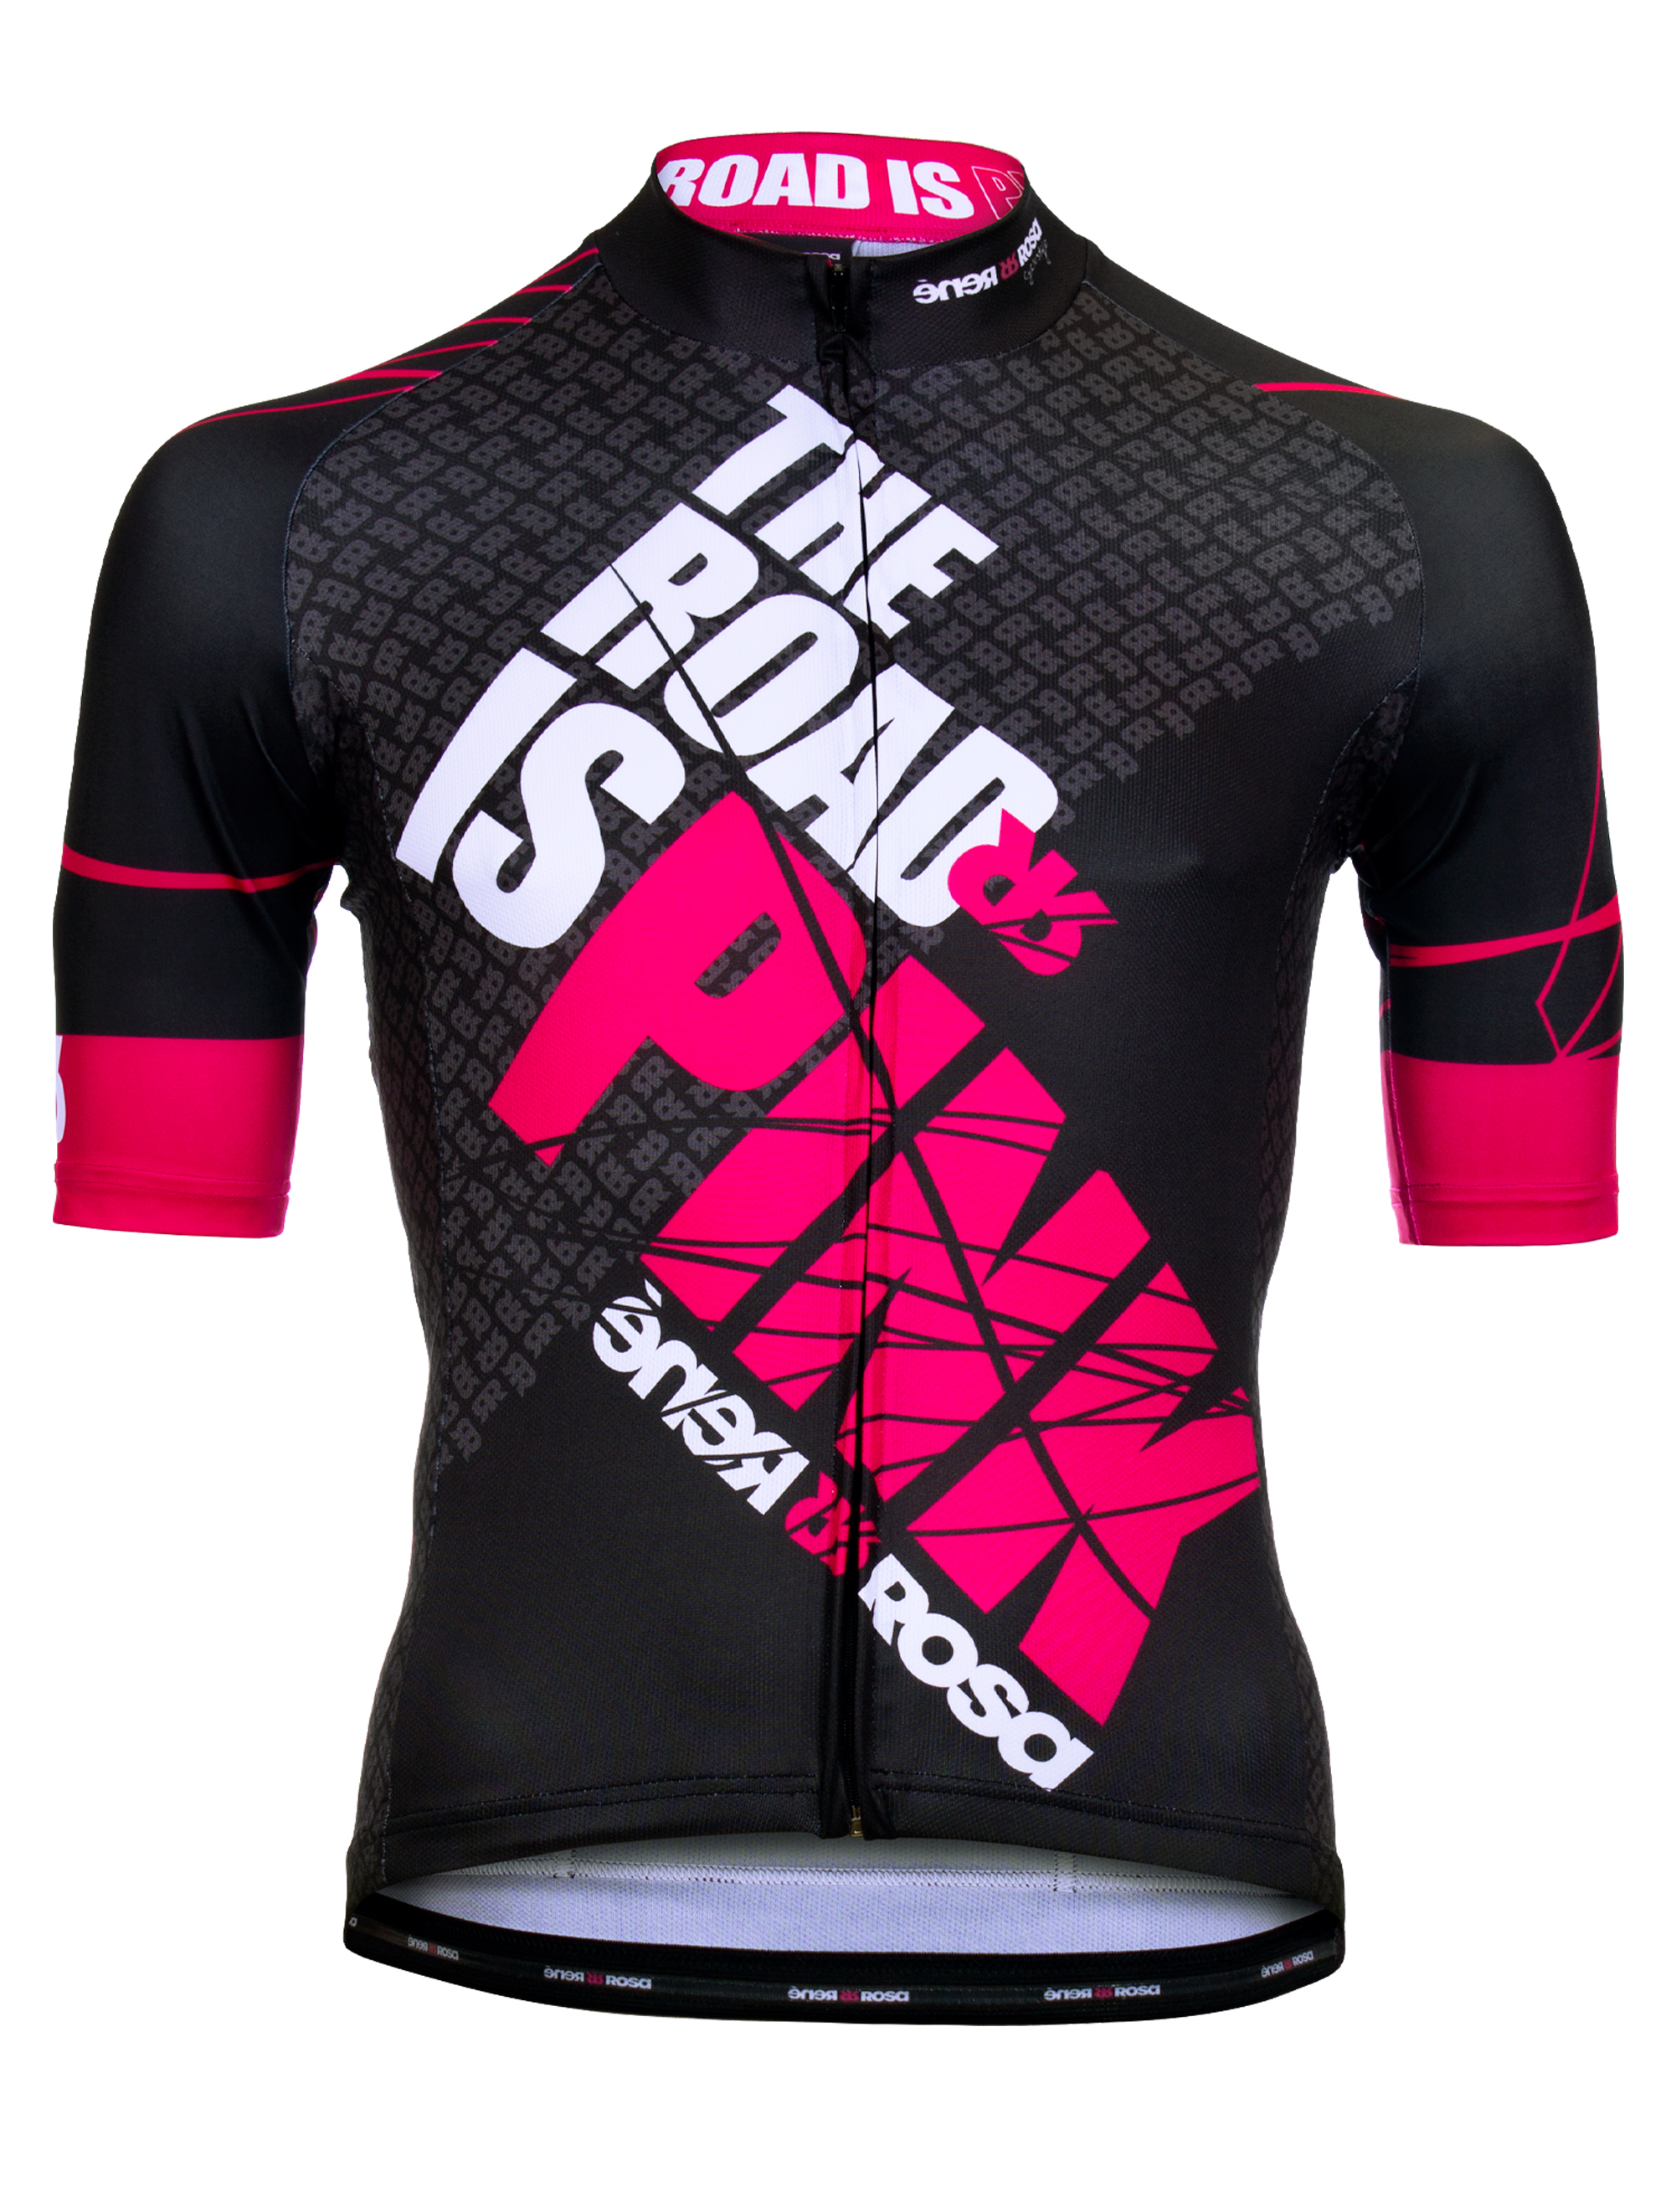 Kurzarm Radtrikot RRT042M / The Road is Pink